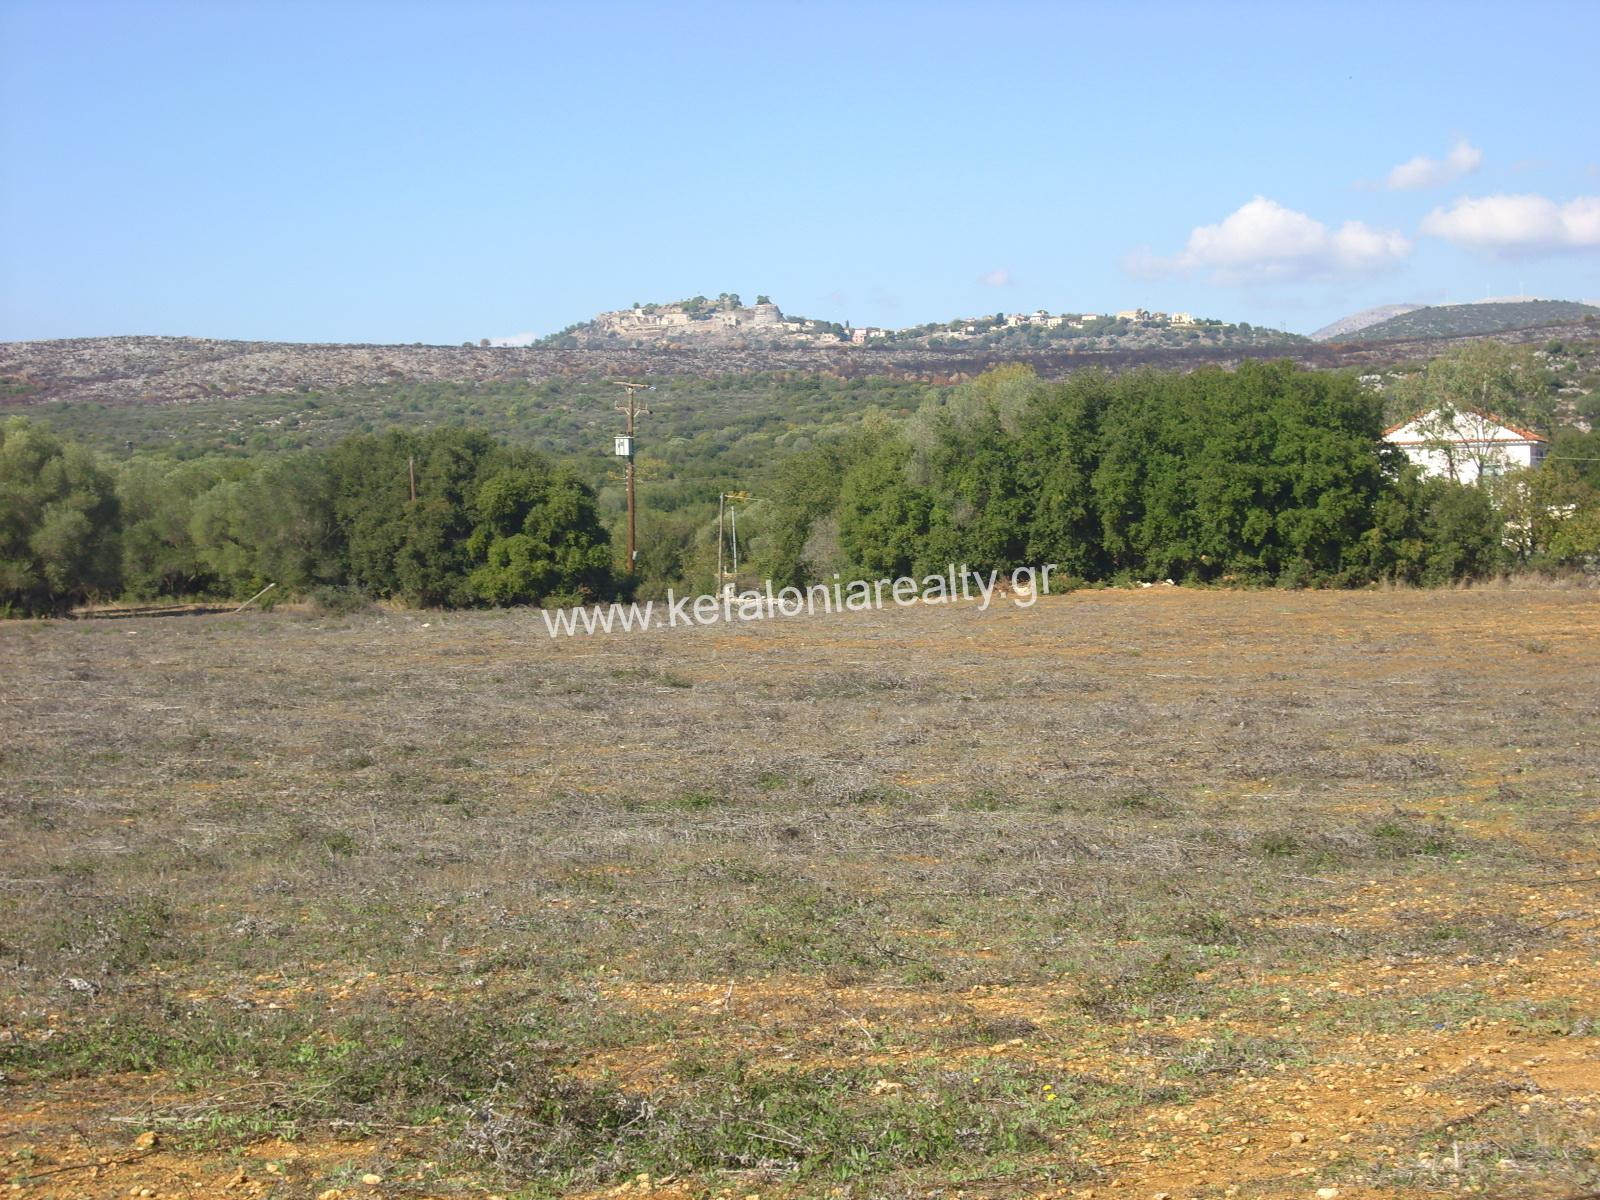 Land For Sale In Keramies